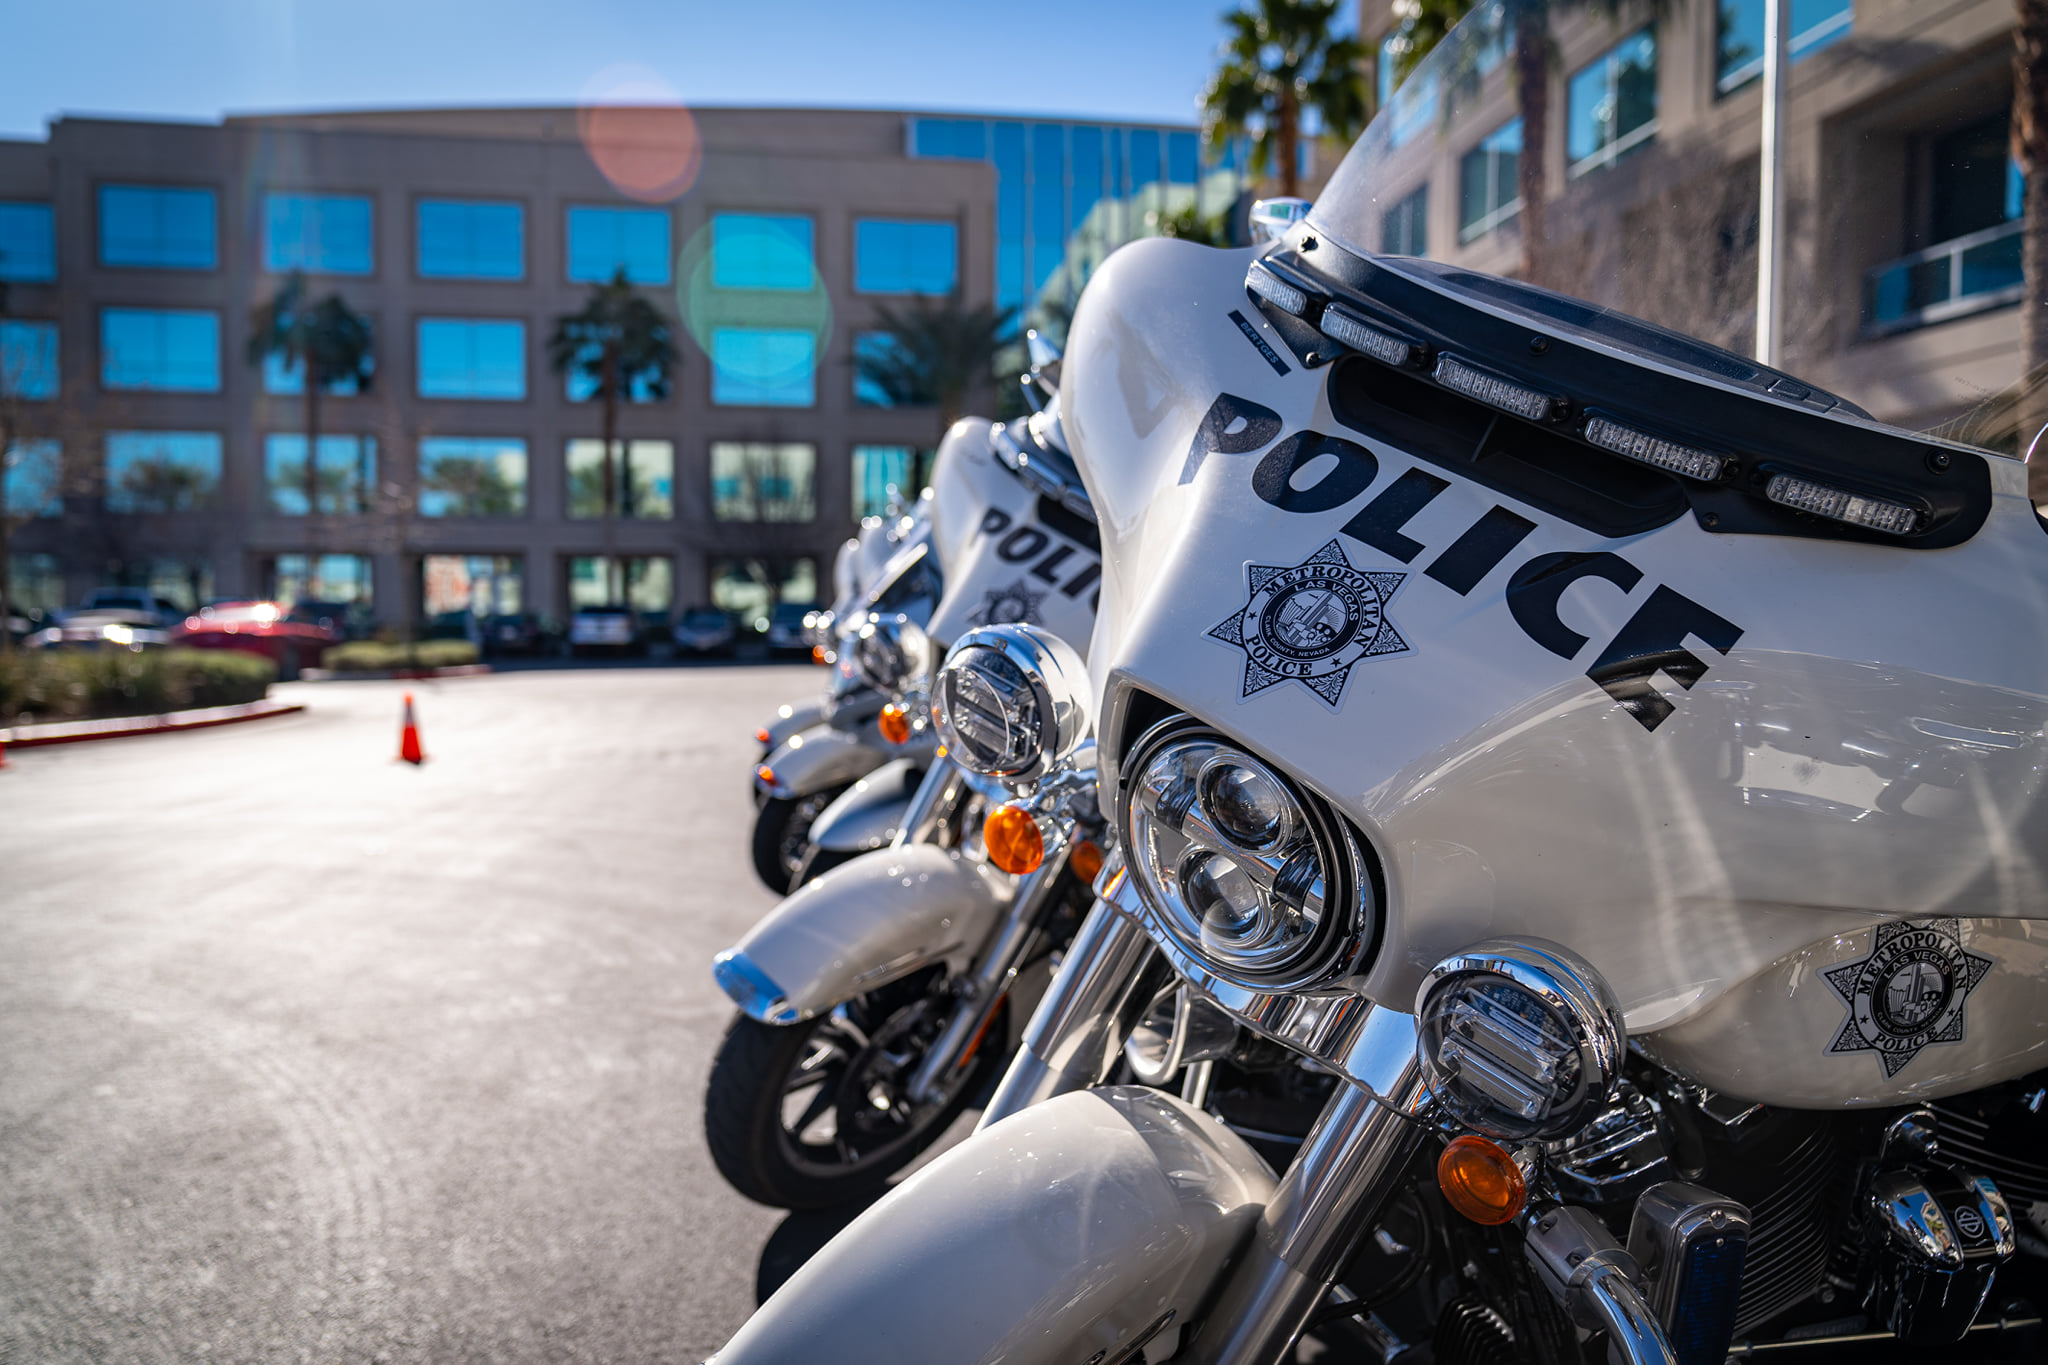 LVMPD Motorcycle Parked Outside of Headquarters